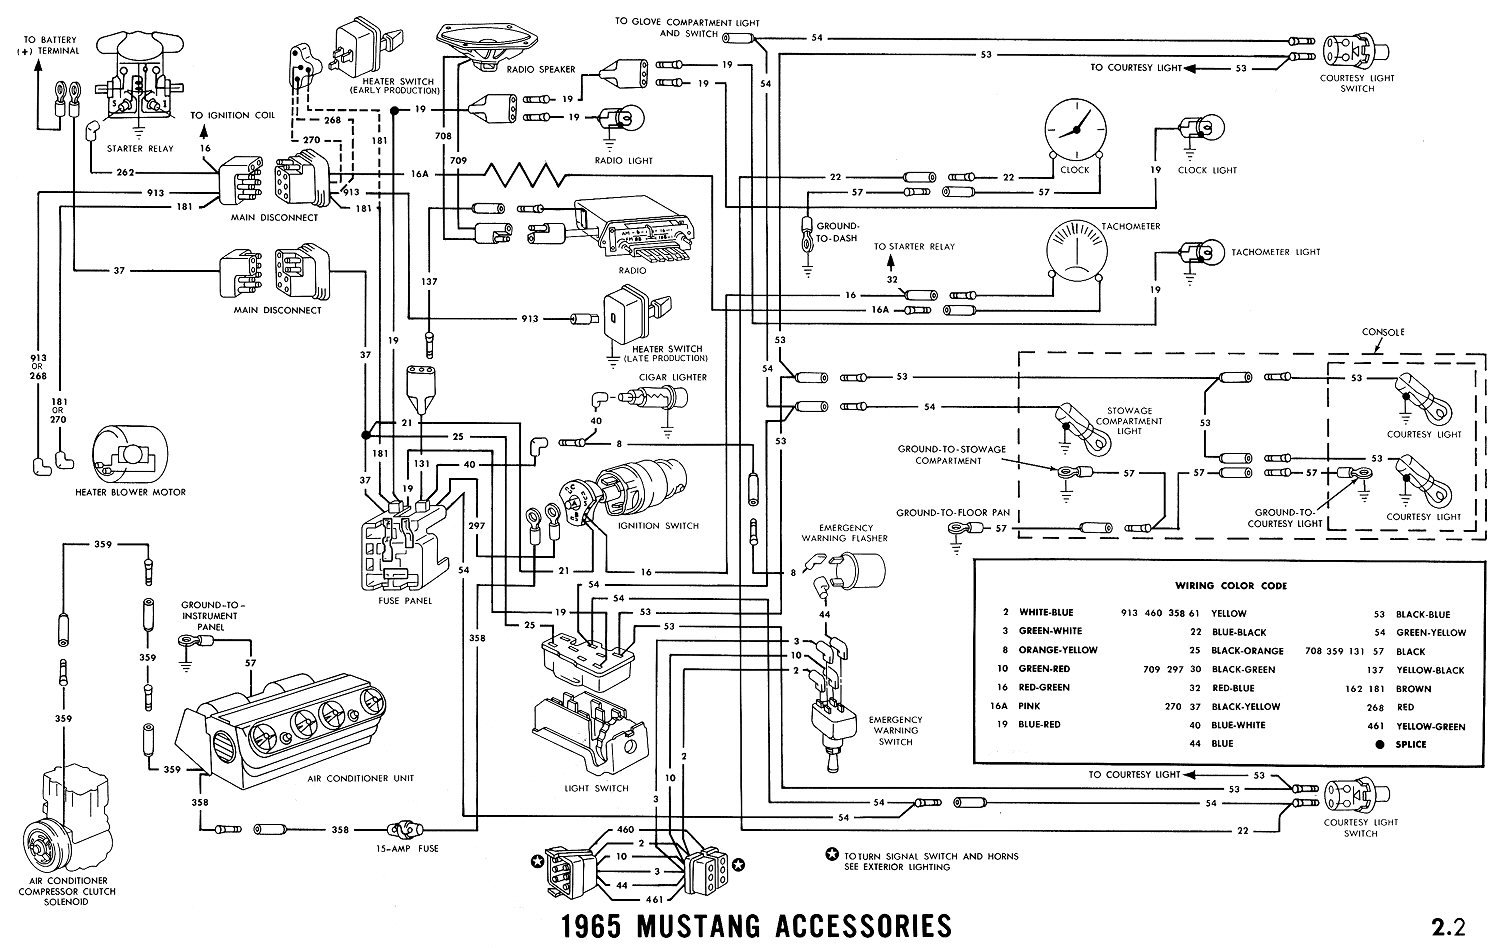 65 radio wiring colors ford mustang forum 1990 mustang radio wiring click  image for larger version